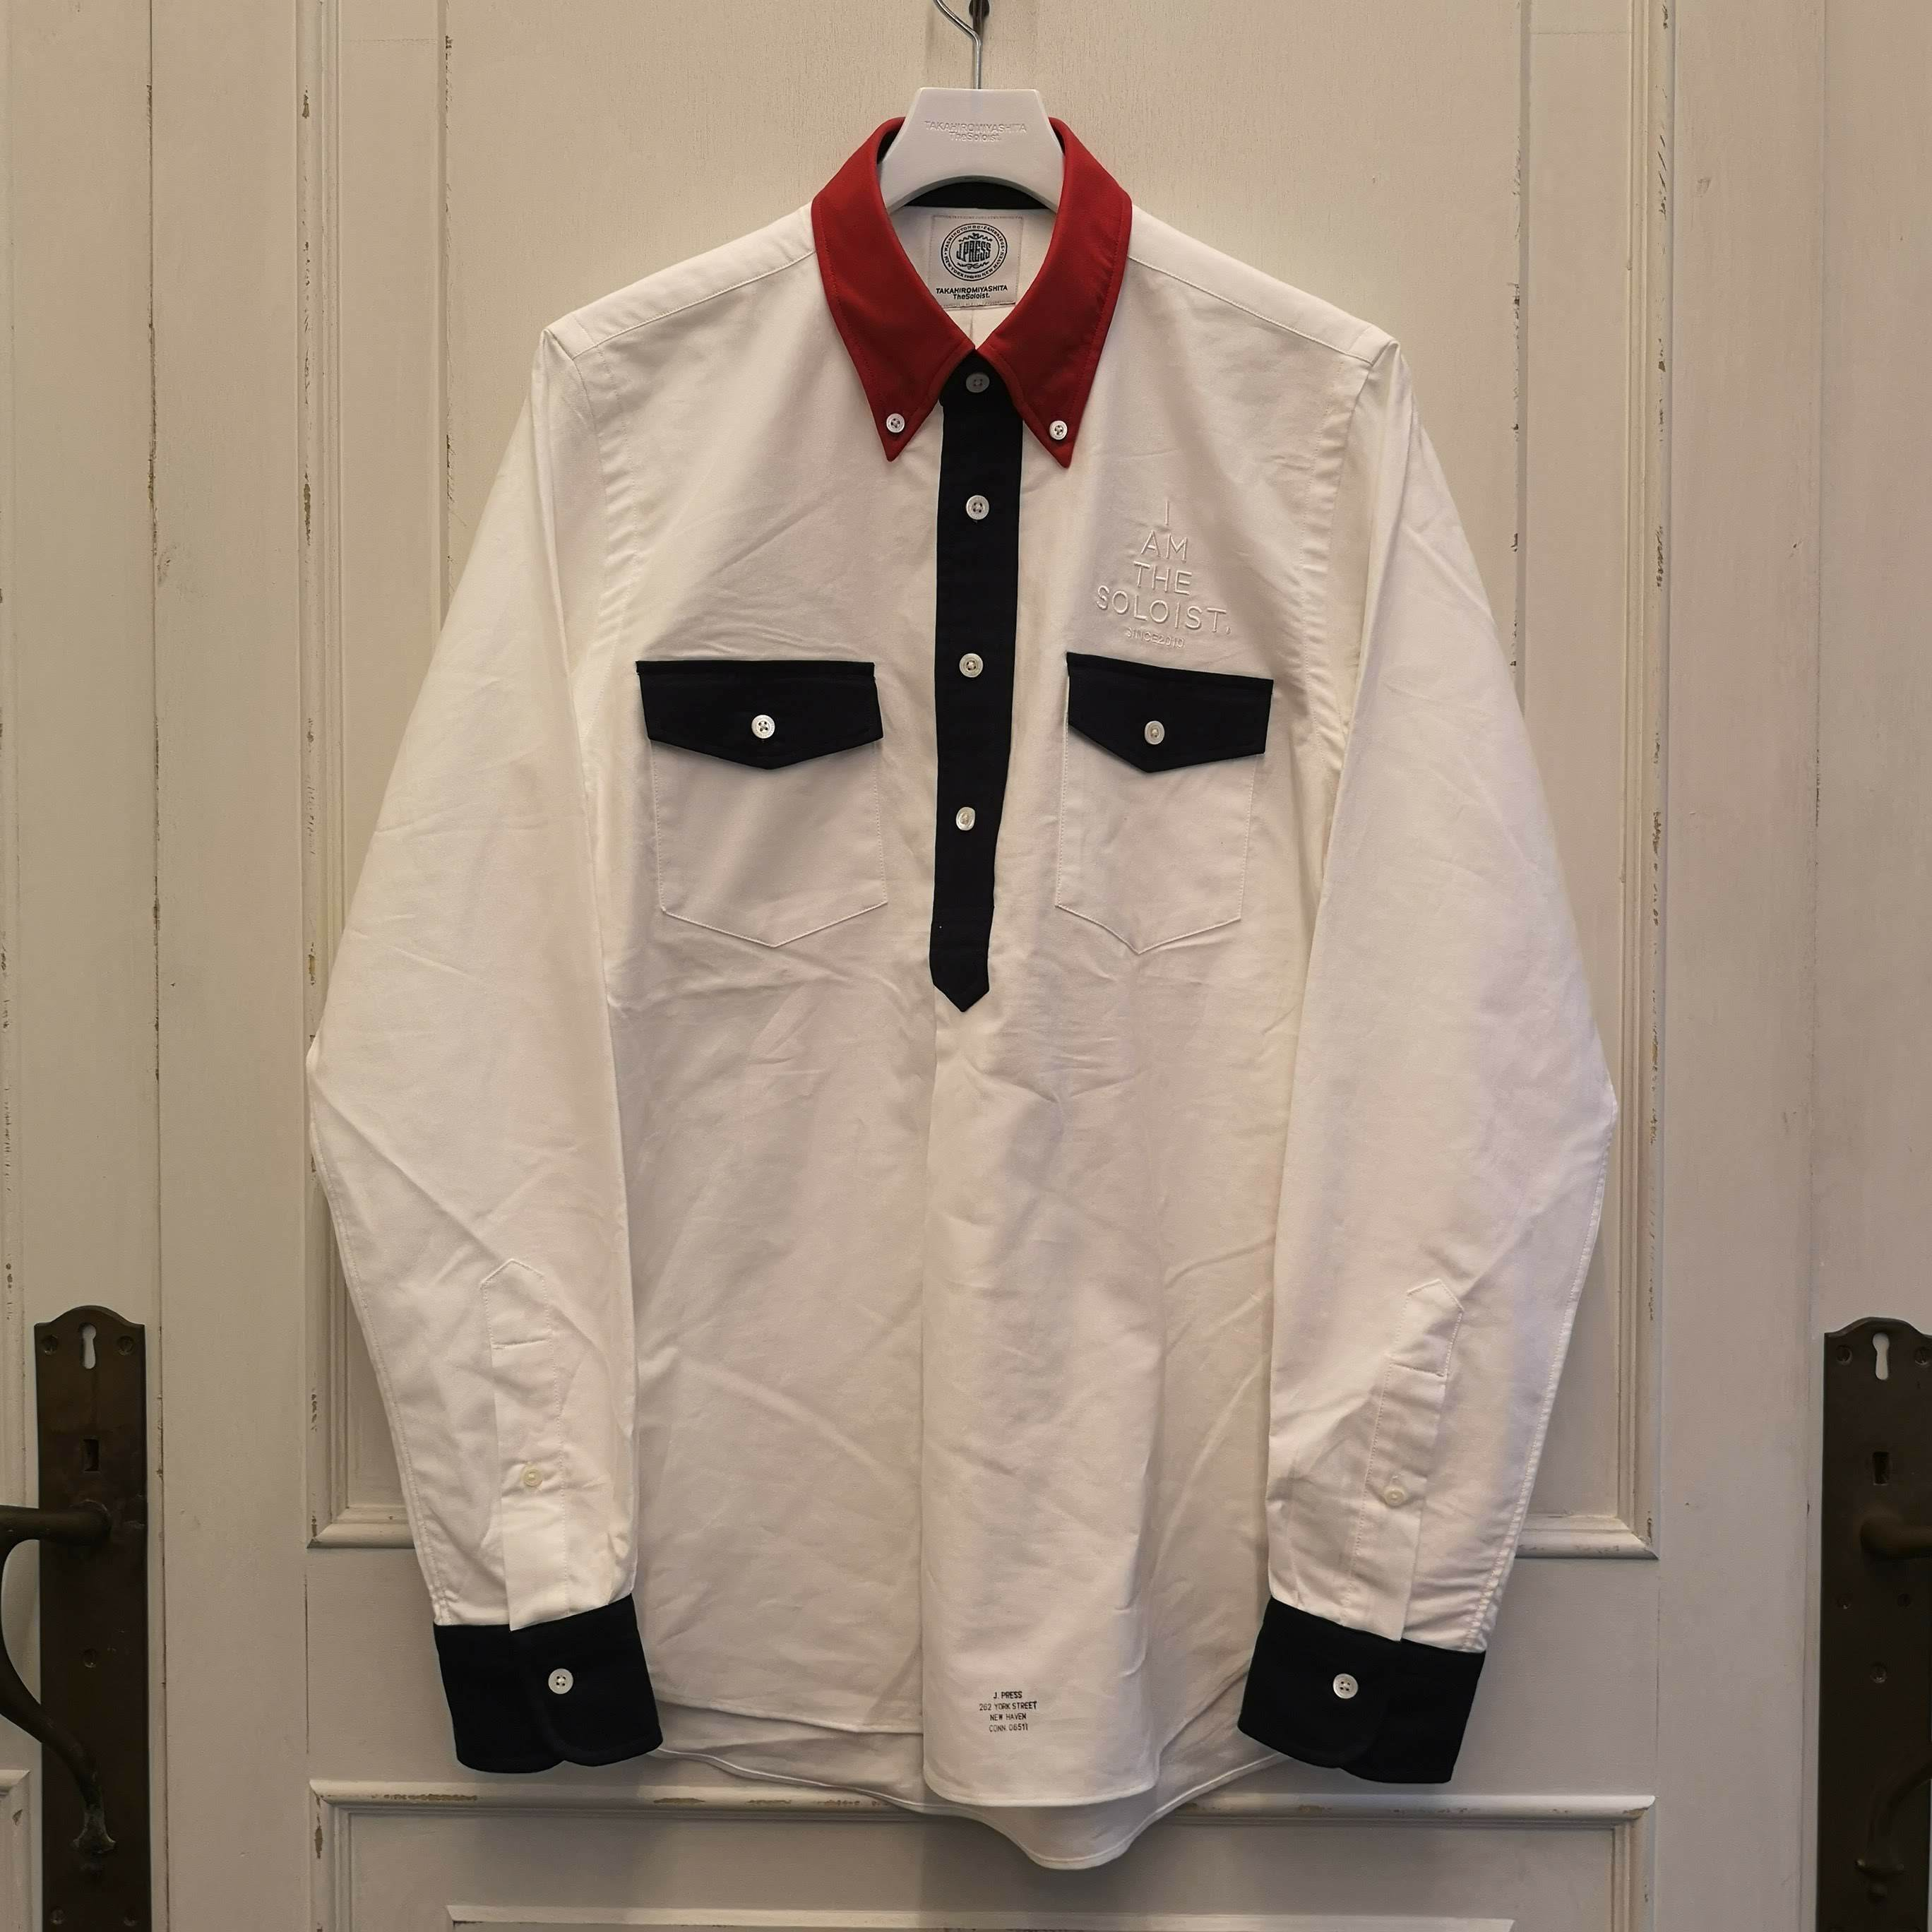 sjs.0002 double pocket pullover B.D shirt.